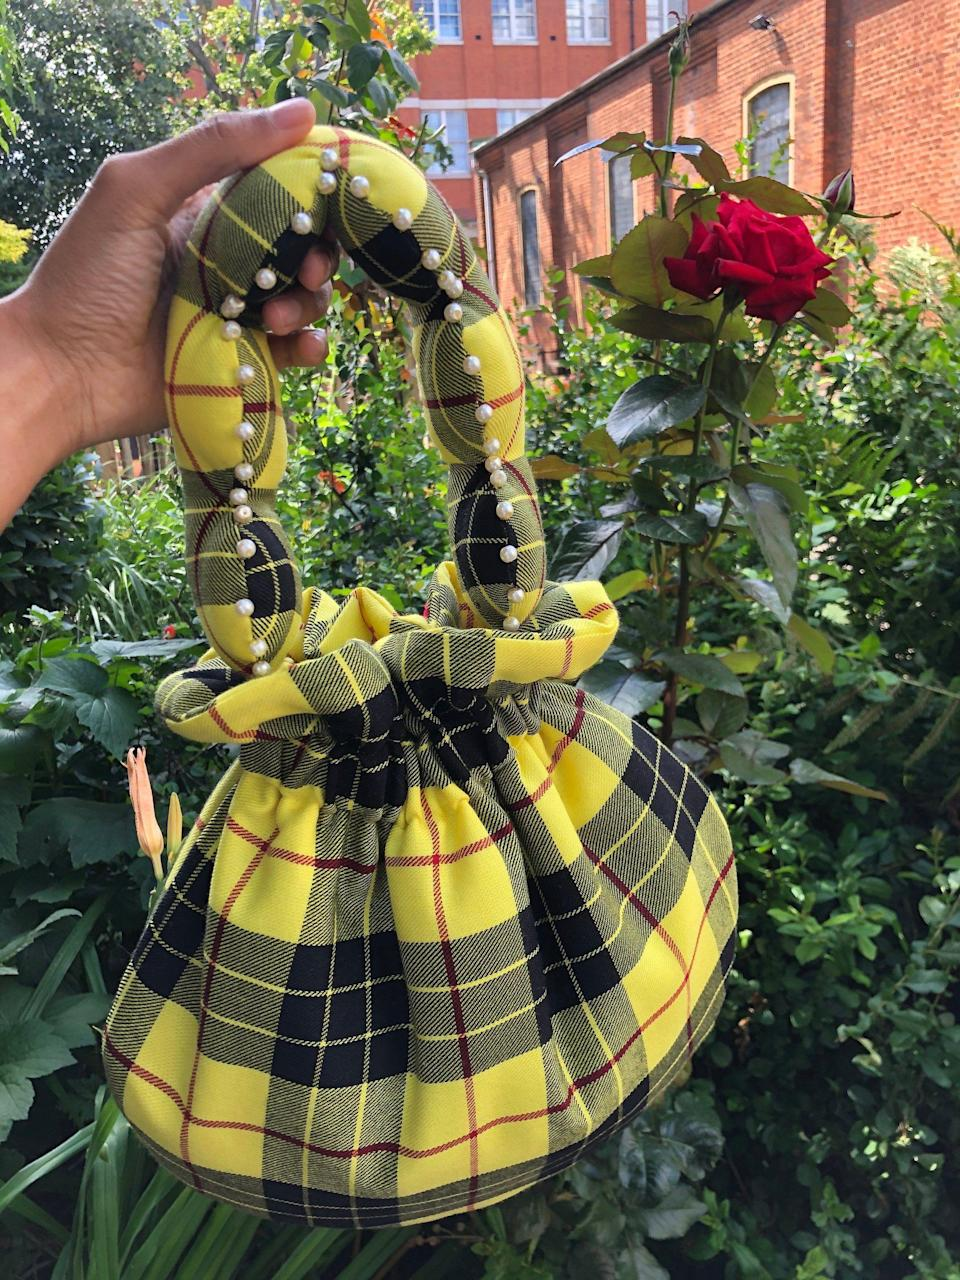 """<p><strong>Flat Fifteen</strong></p><p>flatfifteen.co.uk</p><p><strong>£75.00</strong></p><p><a href=""""https://flatfifteen.co.uk/products/yellow-black-tartan-scallop-handle-bag"""" rel=""""nofollow noopener"""" target=""""_blank"""" data-ylk=""""slk:SHOP IT"""" class=""""link rapid-noclick-resp"""">SHOP IT</a></p><p>This super sweet lil' puffy bag, inspired by those """"your Aunty would probably wear to Church on a Sunday,"""" is made from remnant and vintage fabric and beads from used jewelry. It's puffed up from stuffing used to fill toys and furniture.</p>"""